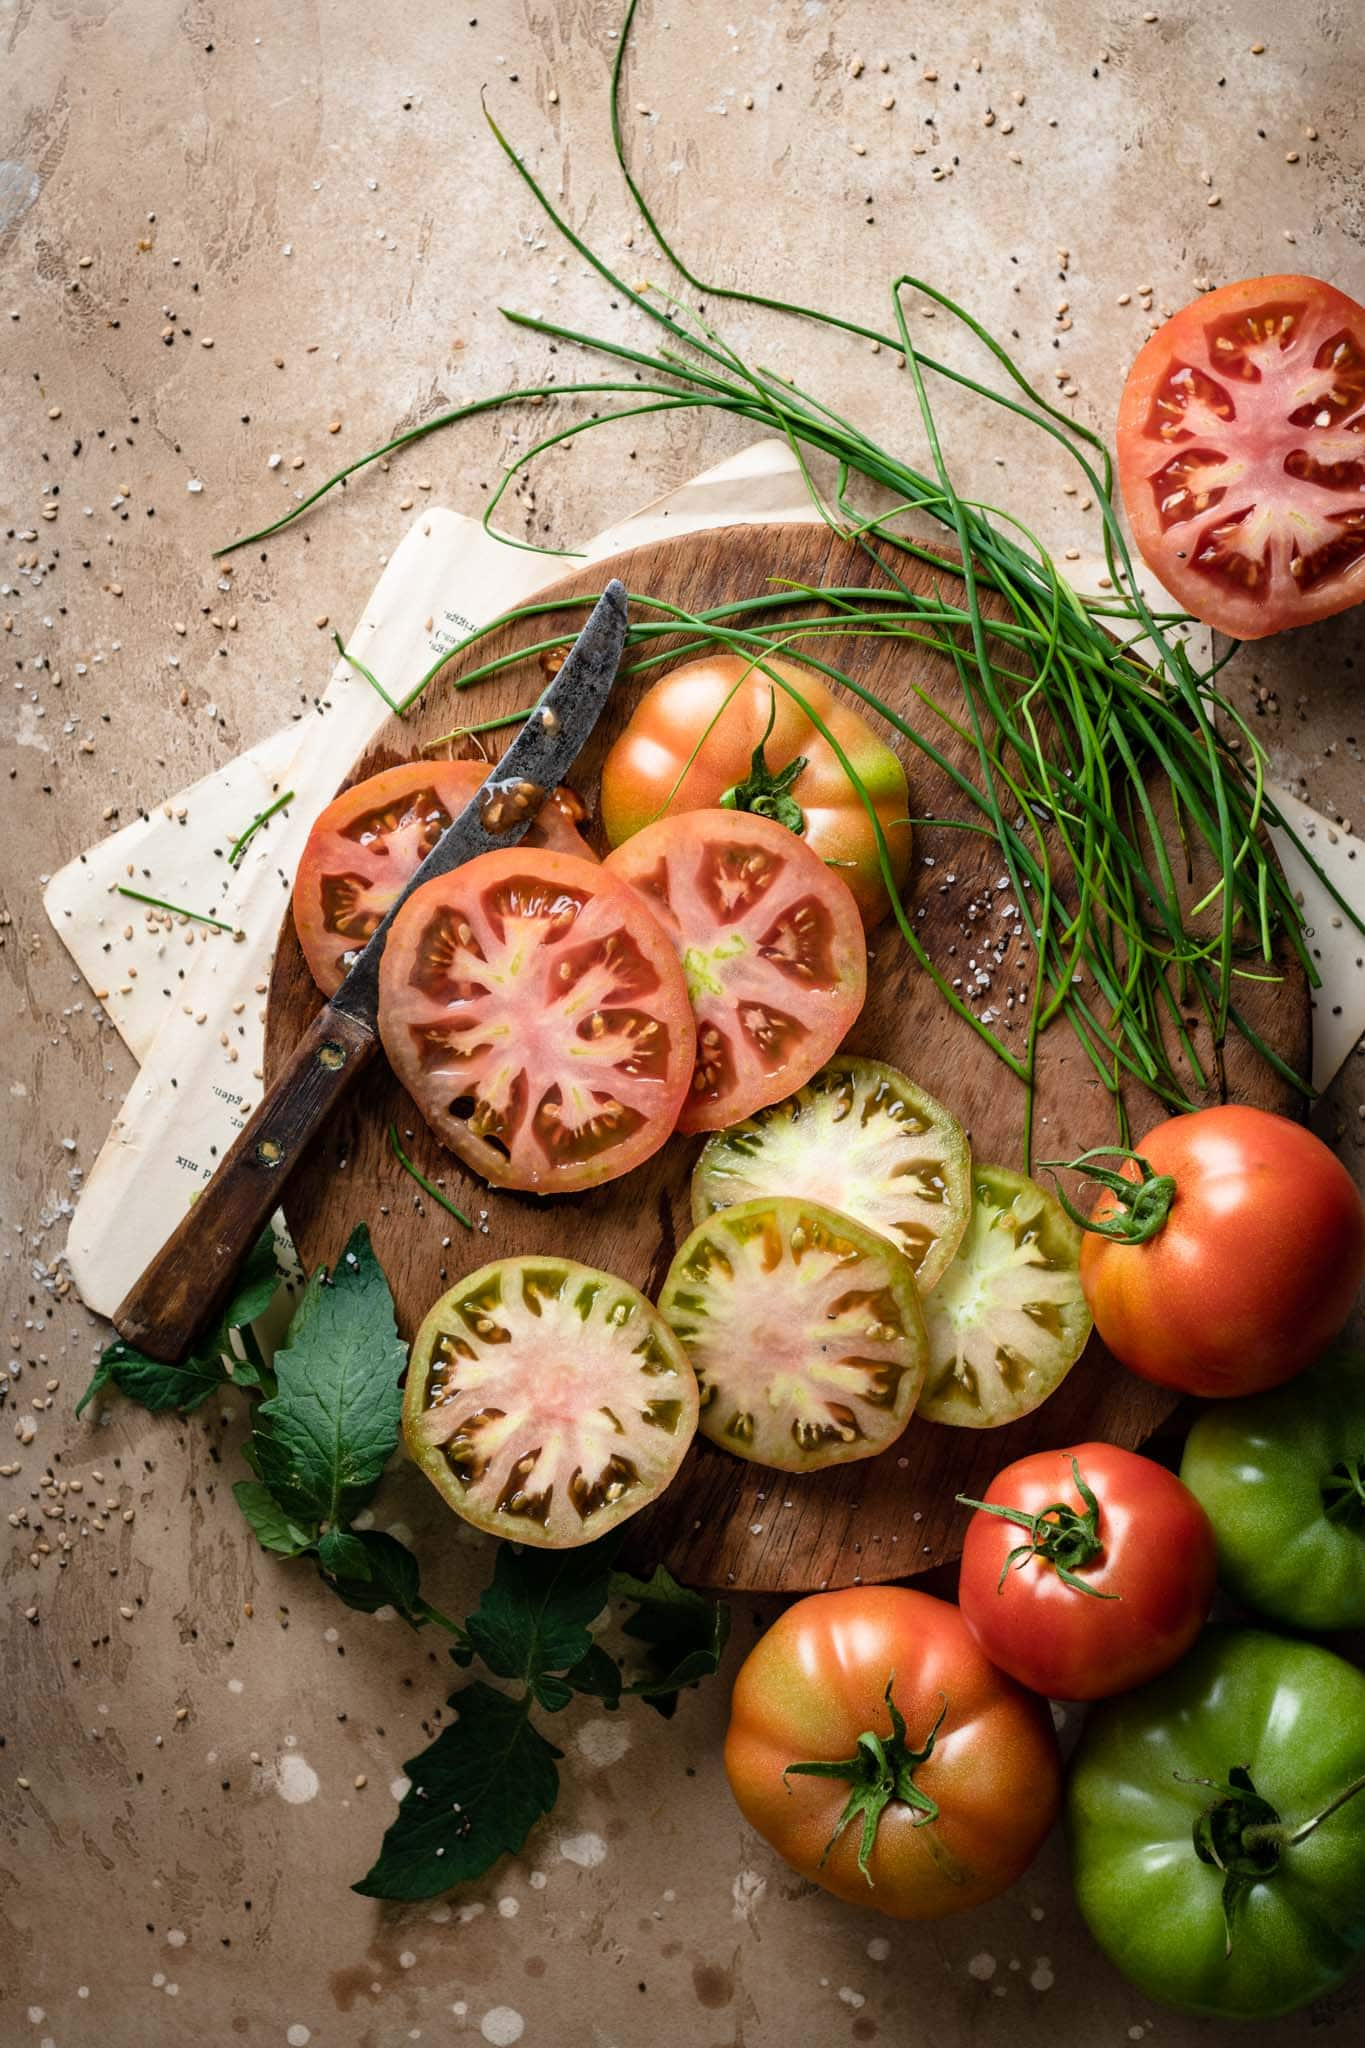 Sliced heirloom tomatoes and chives.